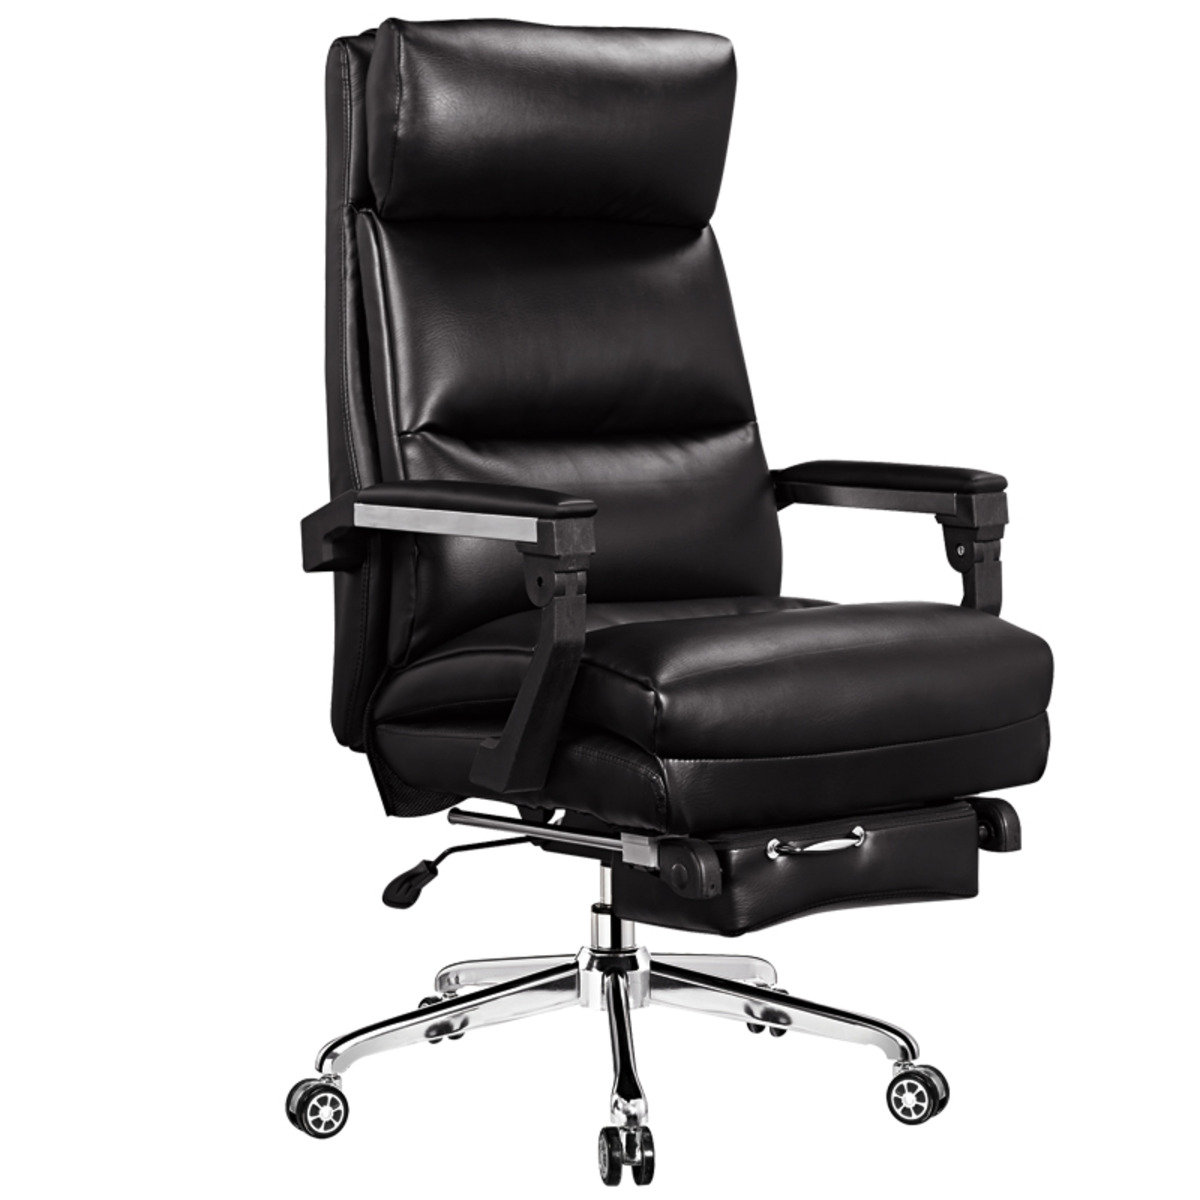 PU LEATHER - Reclining Office Chair 2091 Black